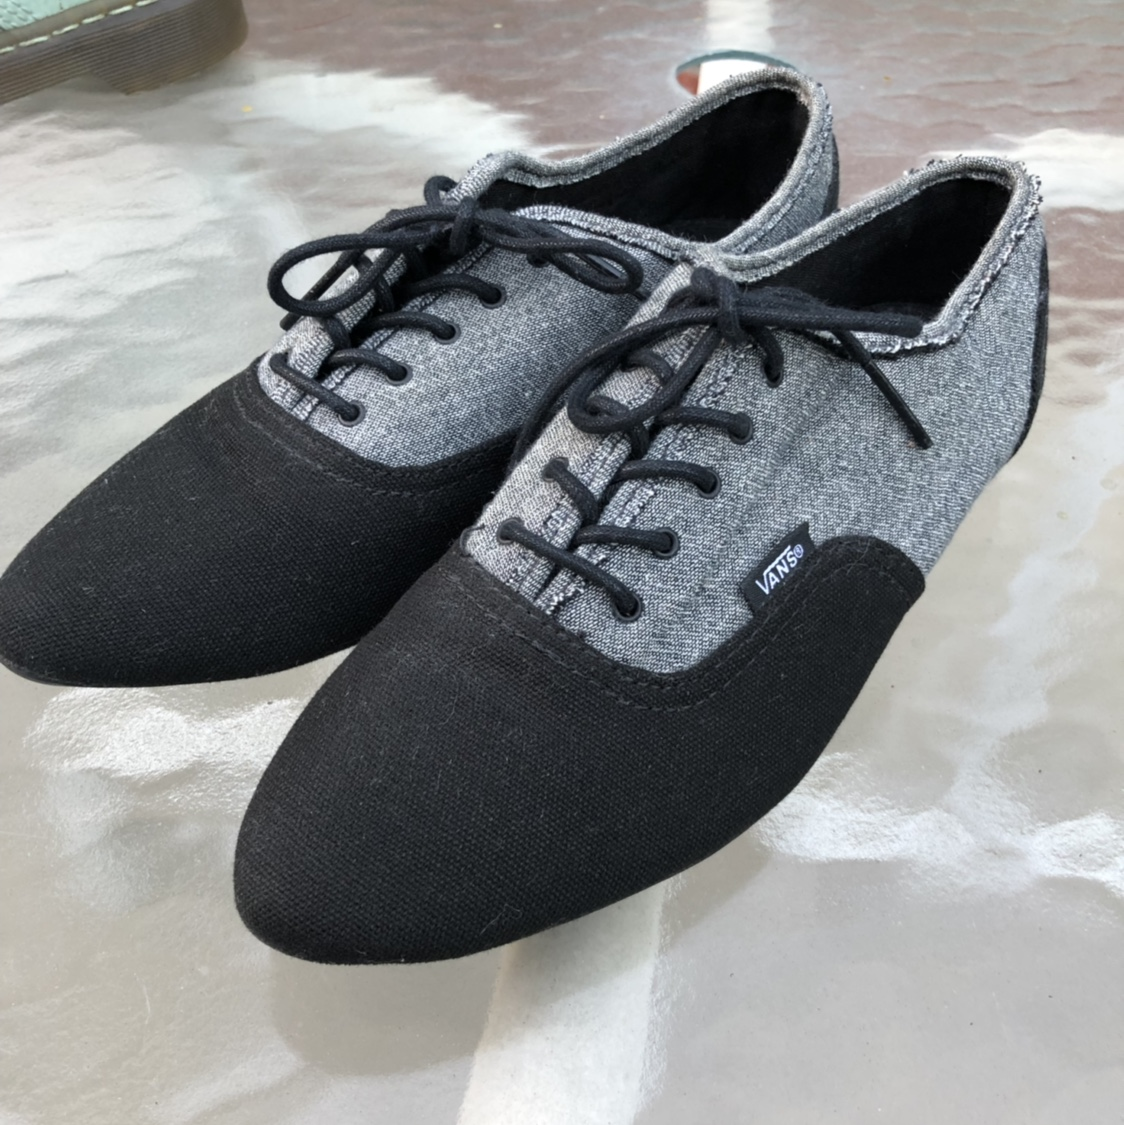 Vans Oxford Shoes Best Sale, UP TO 70% OFF